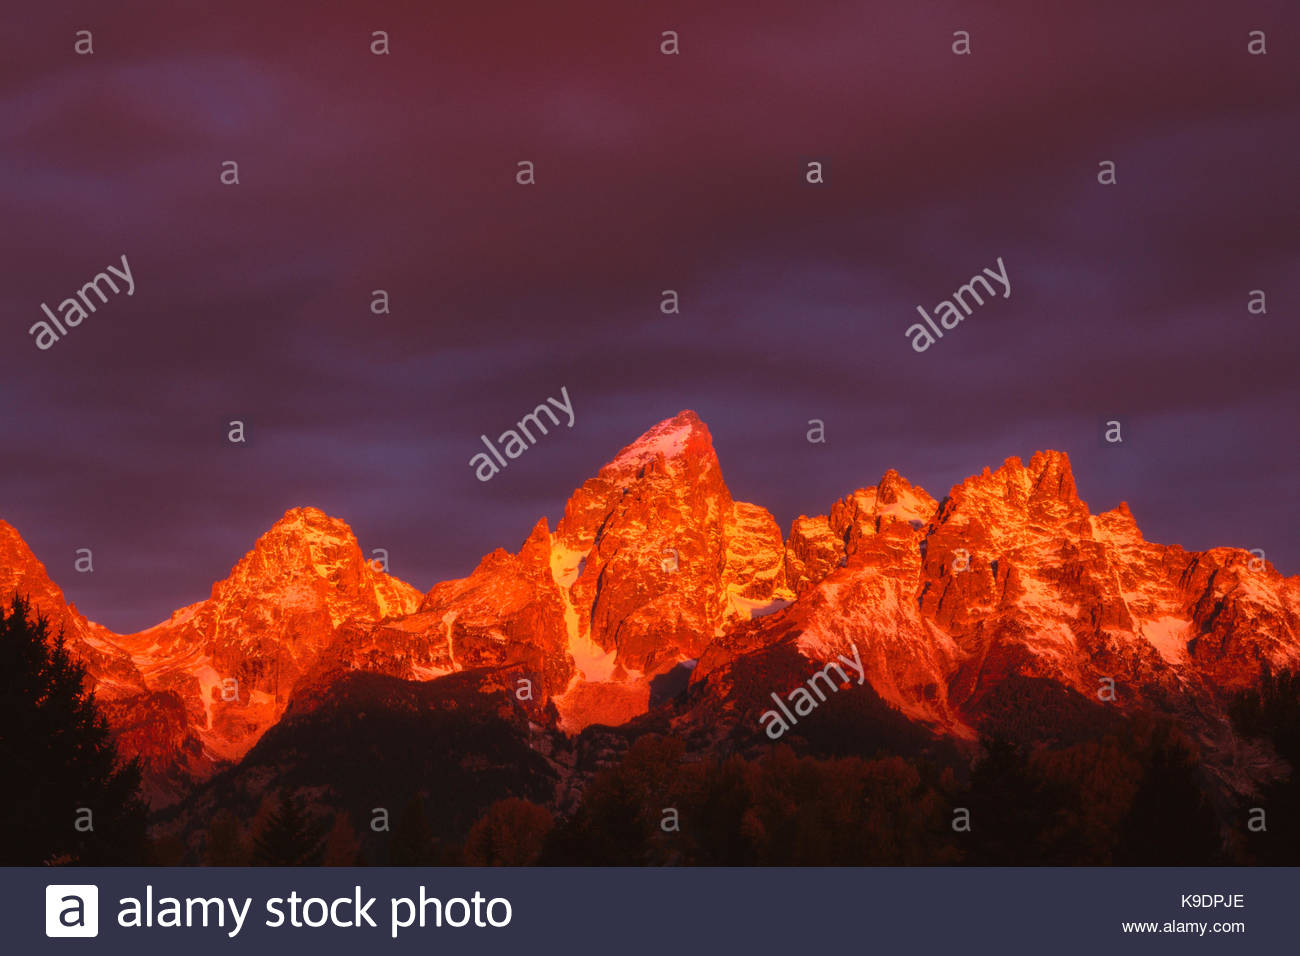 First Light on Teton Range, Grand Teton National Park, Wyoming - Stock Image